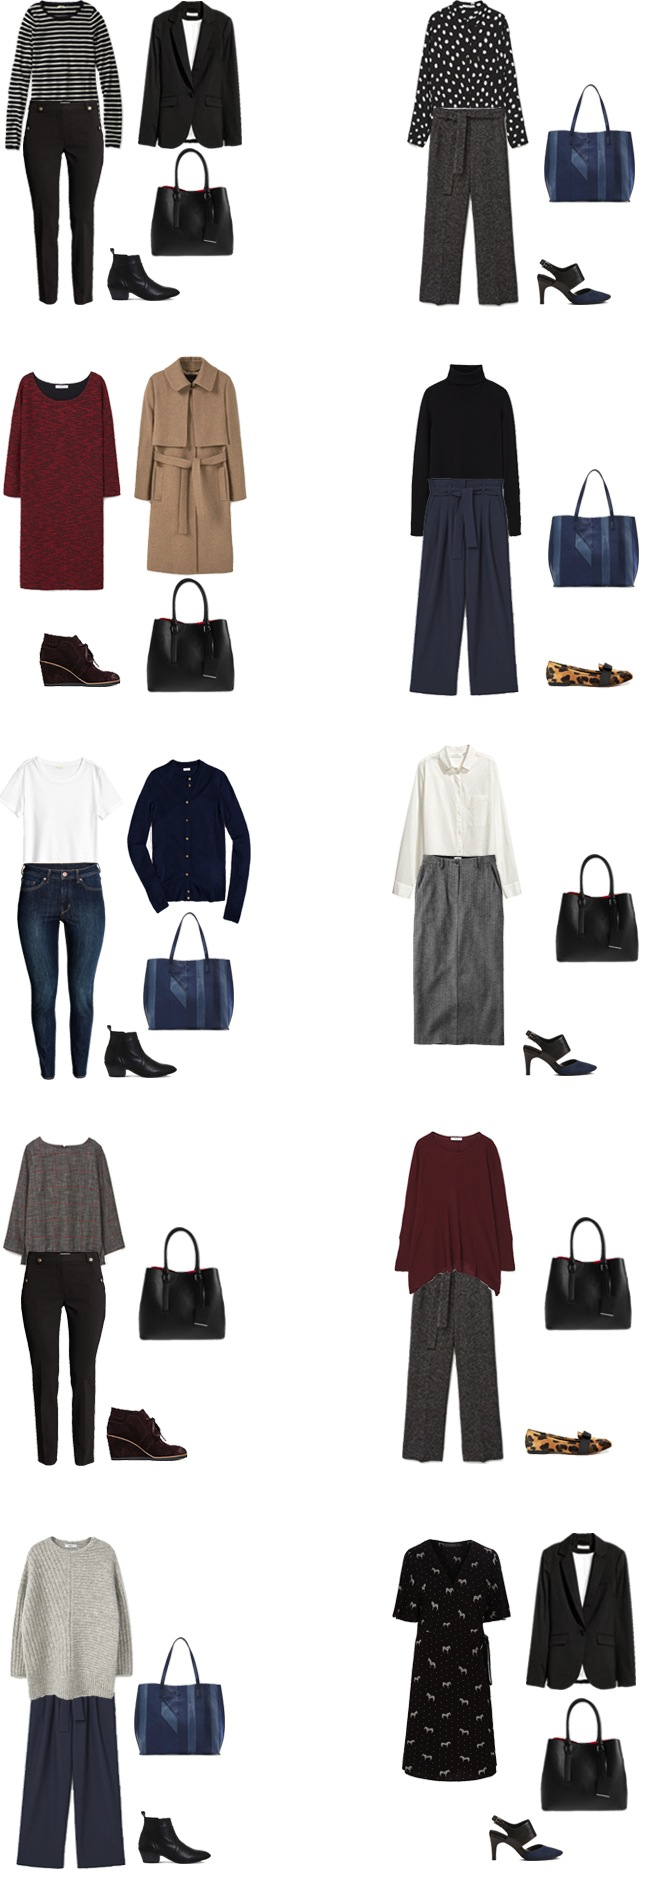 Fall Winter Work Capsule Wardrobe Outfit Options